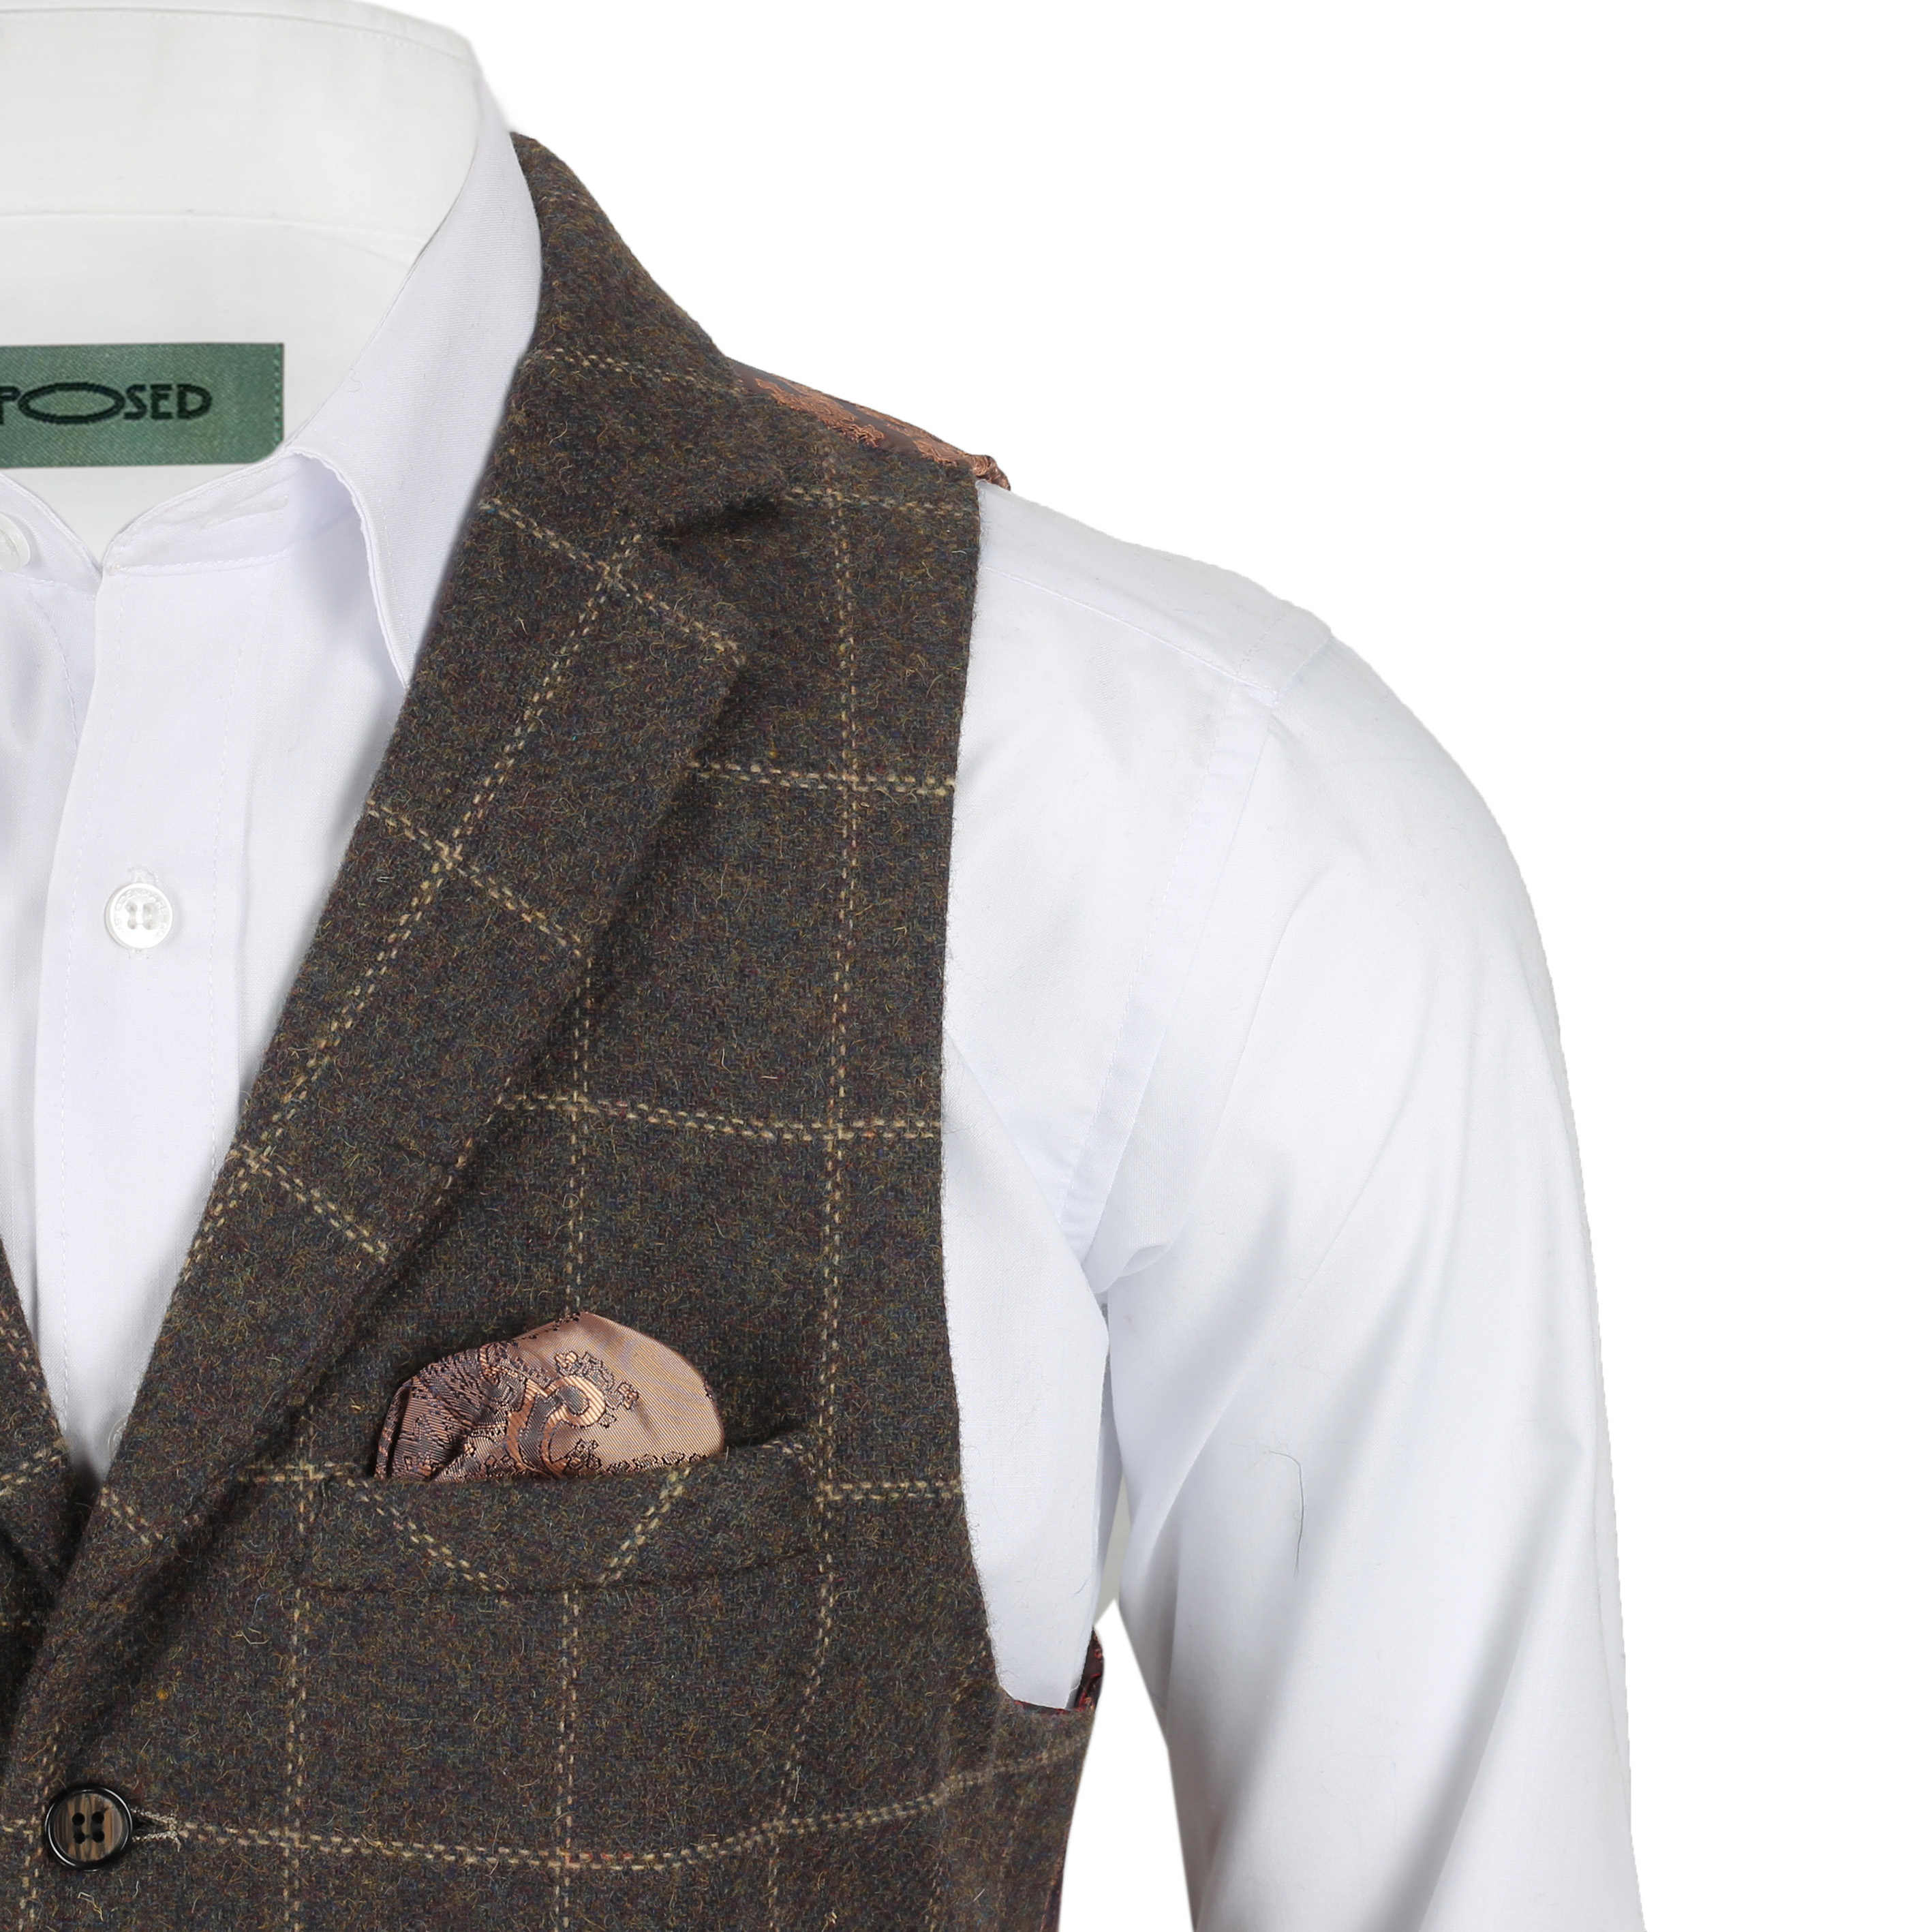 Mens-Tweed-Check-Waistcoat-Vintage-Herringbone-VelvetCollar-Lapel-Slim-Fit-Vest thumbnail 8